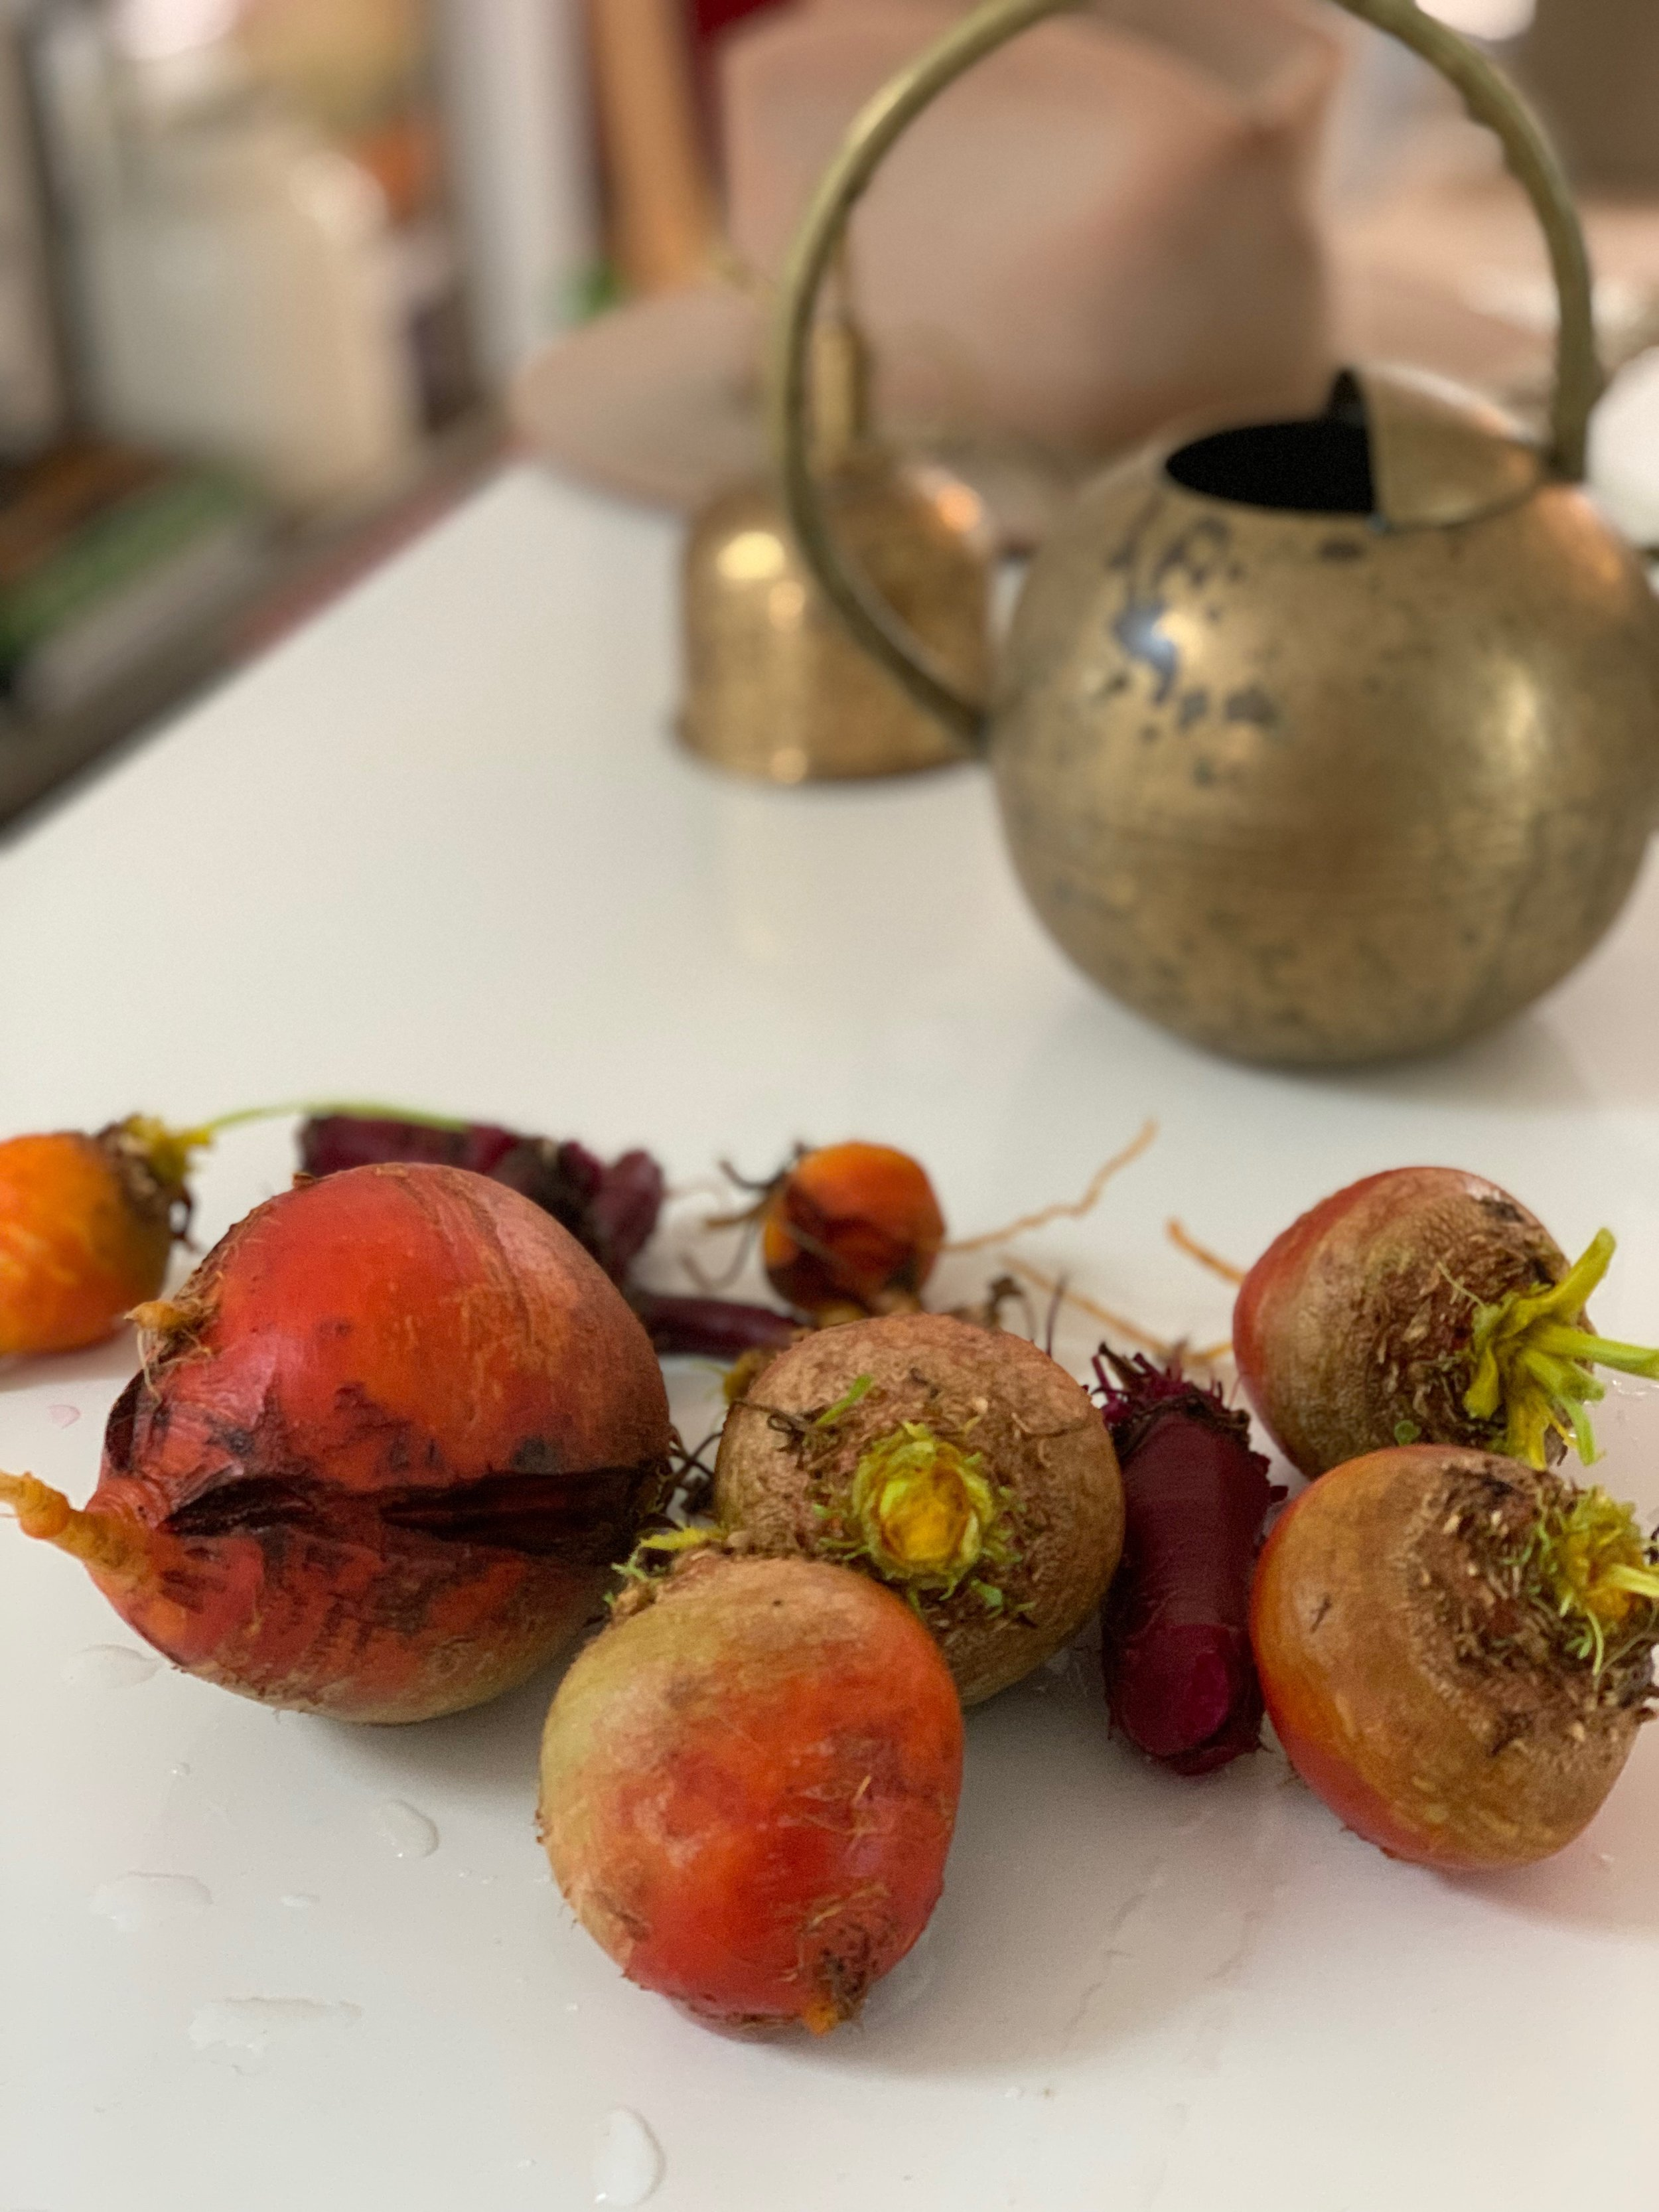 Fresh-picked beets from Carnahan's garden